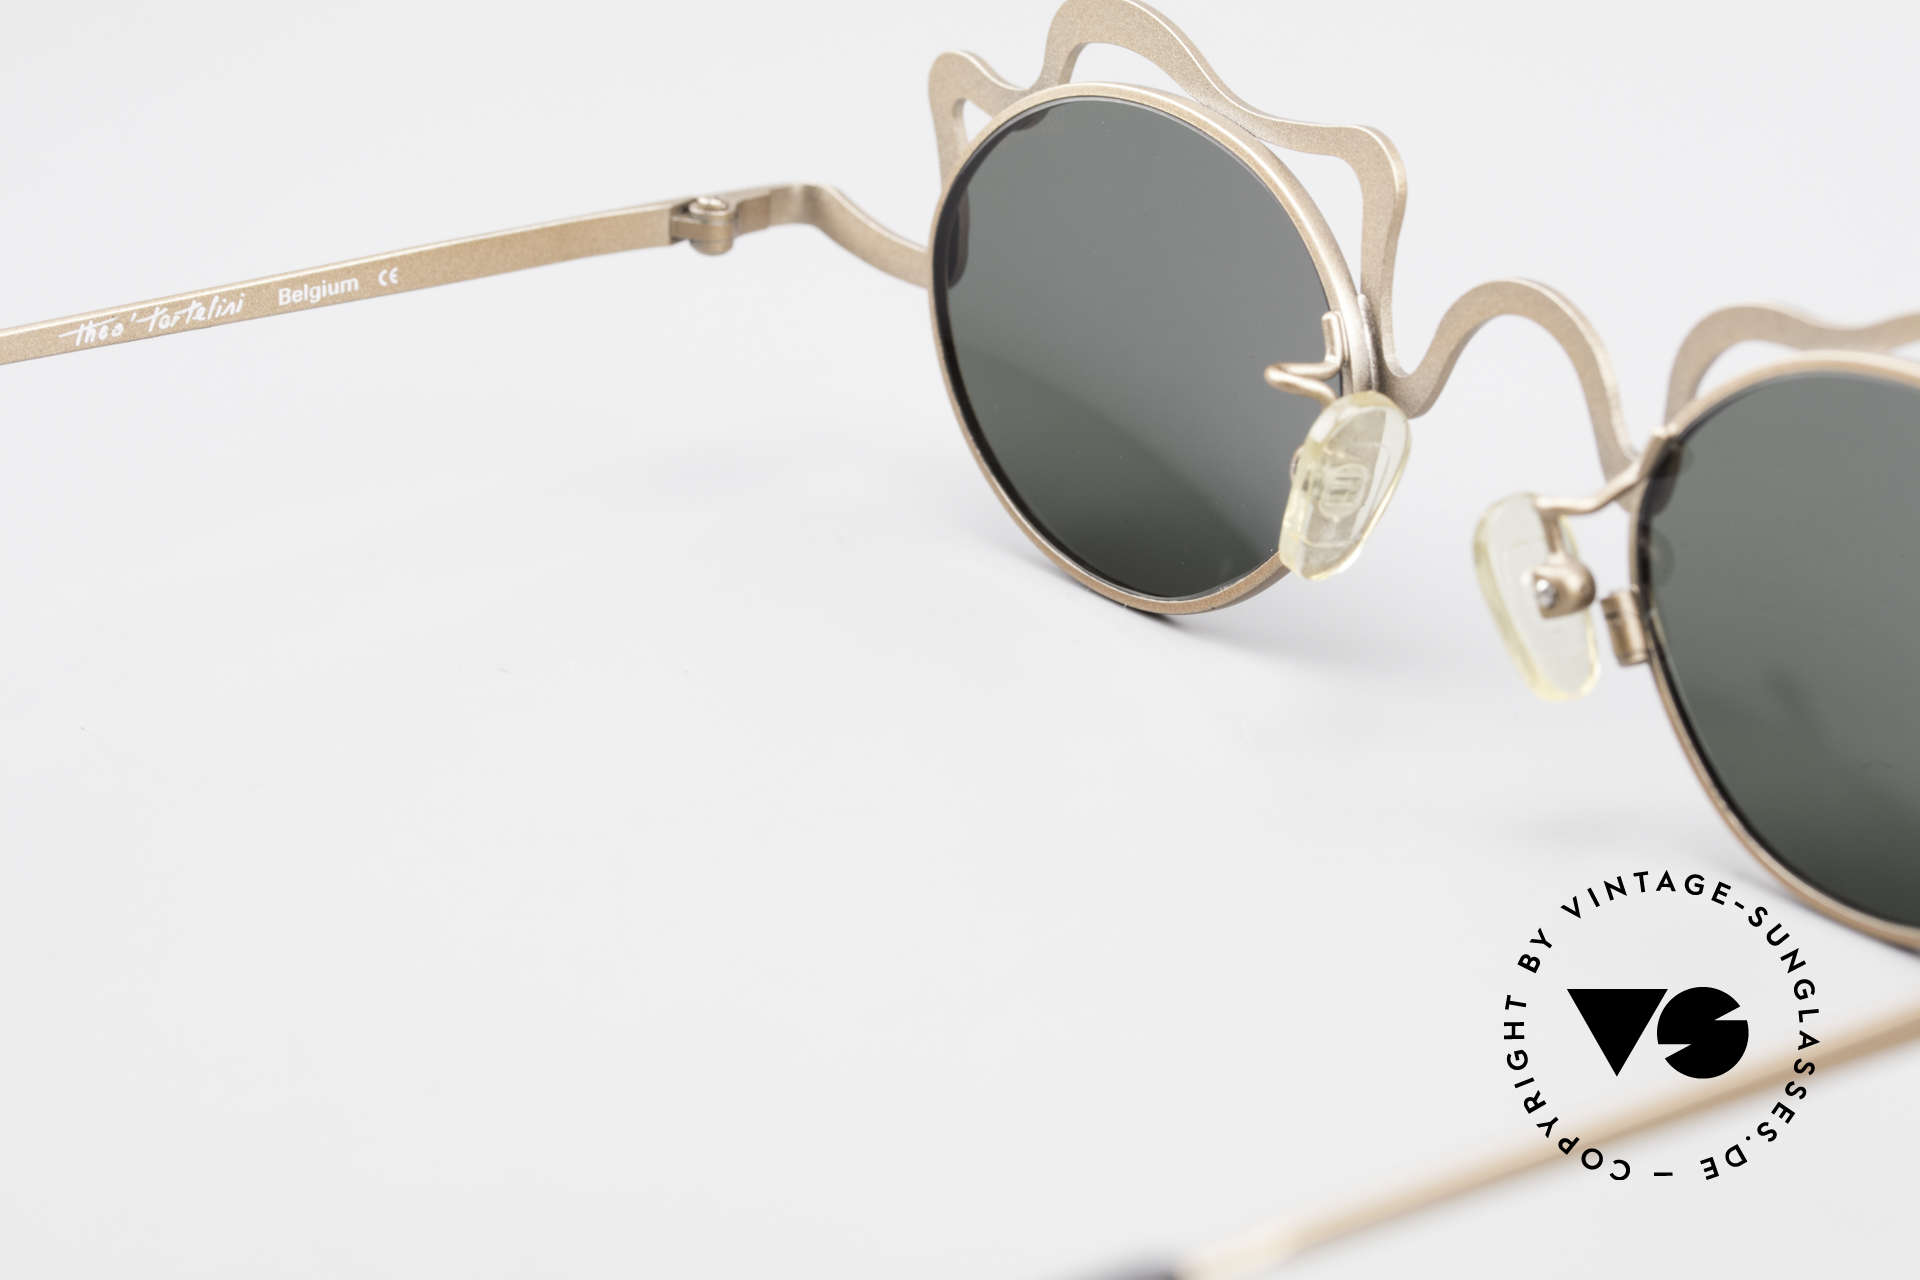 Theo Belgium Tortelini Spaghetti Sunglasses Ladies, so to speak: vintage sunglasses with representativeness, Made for Women